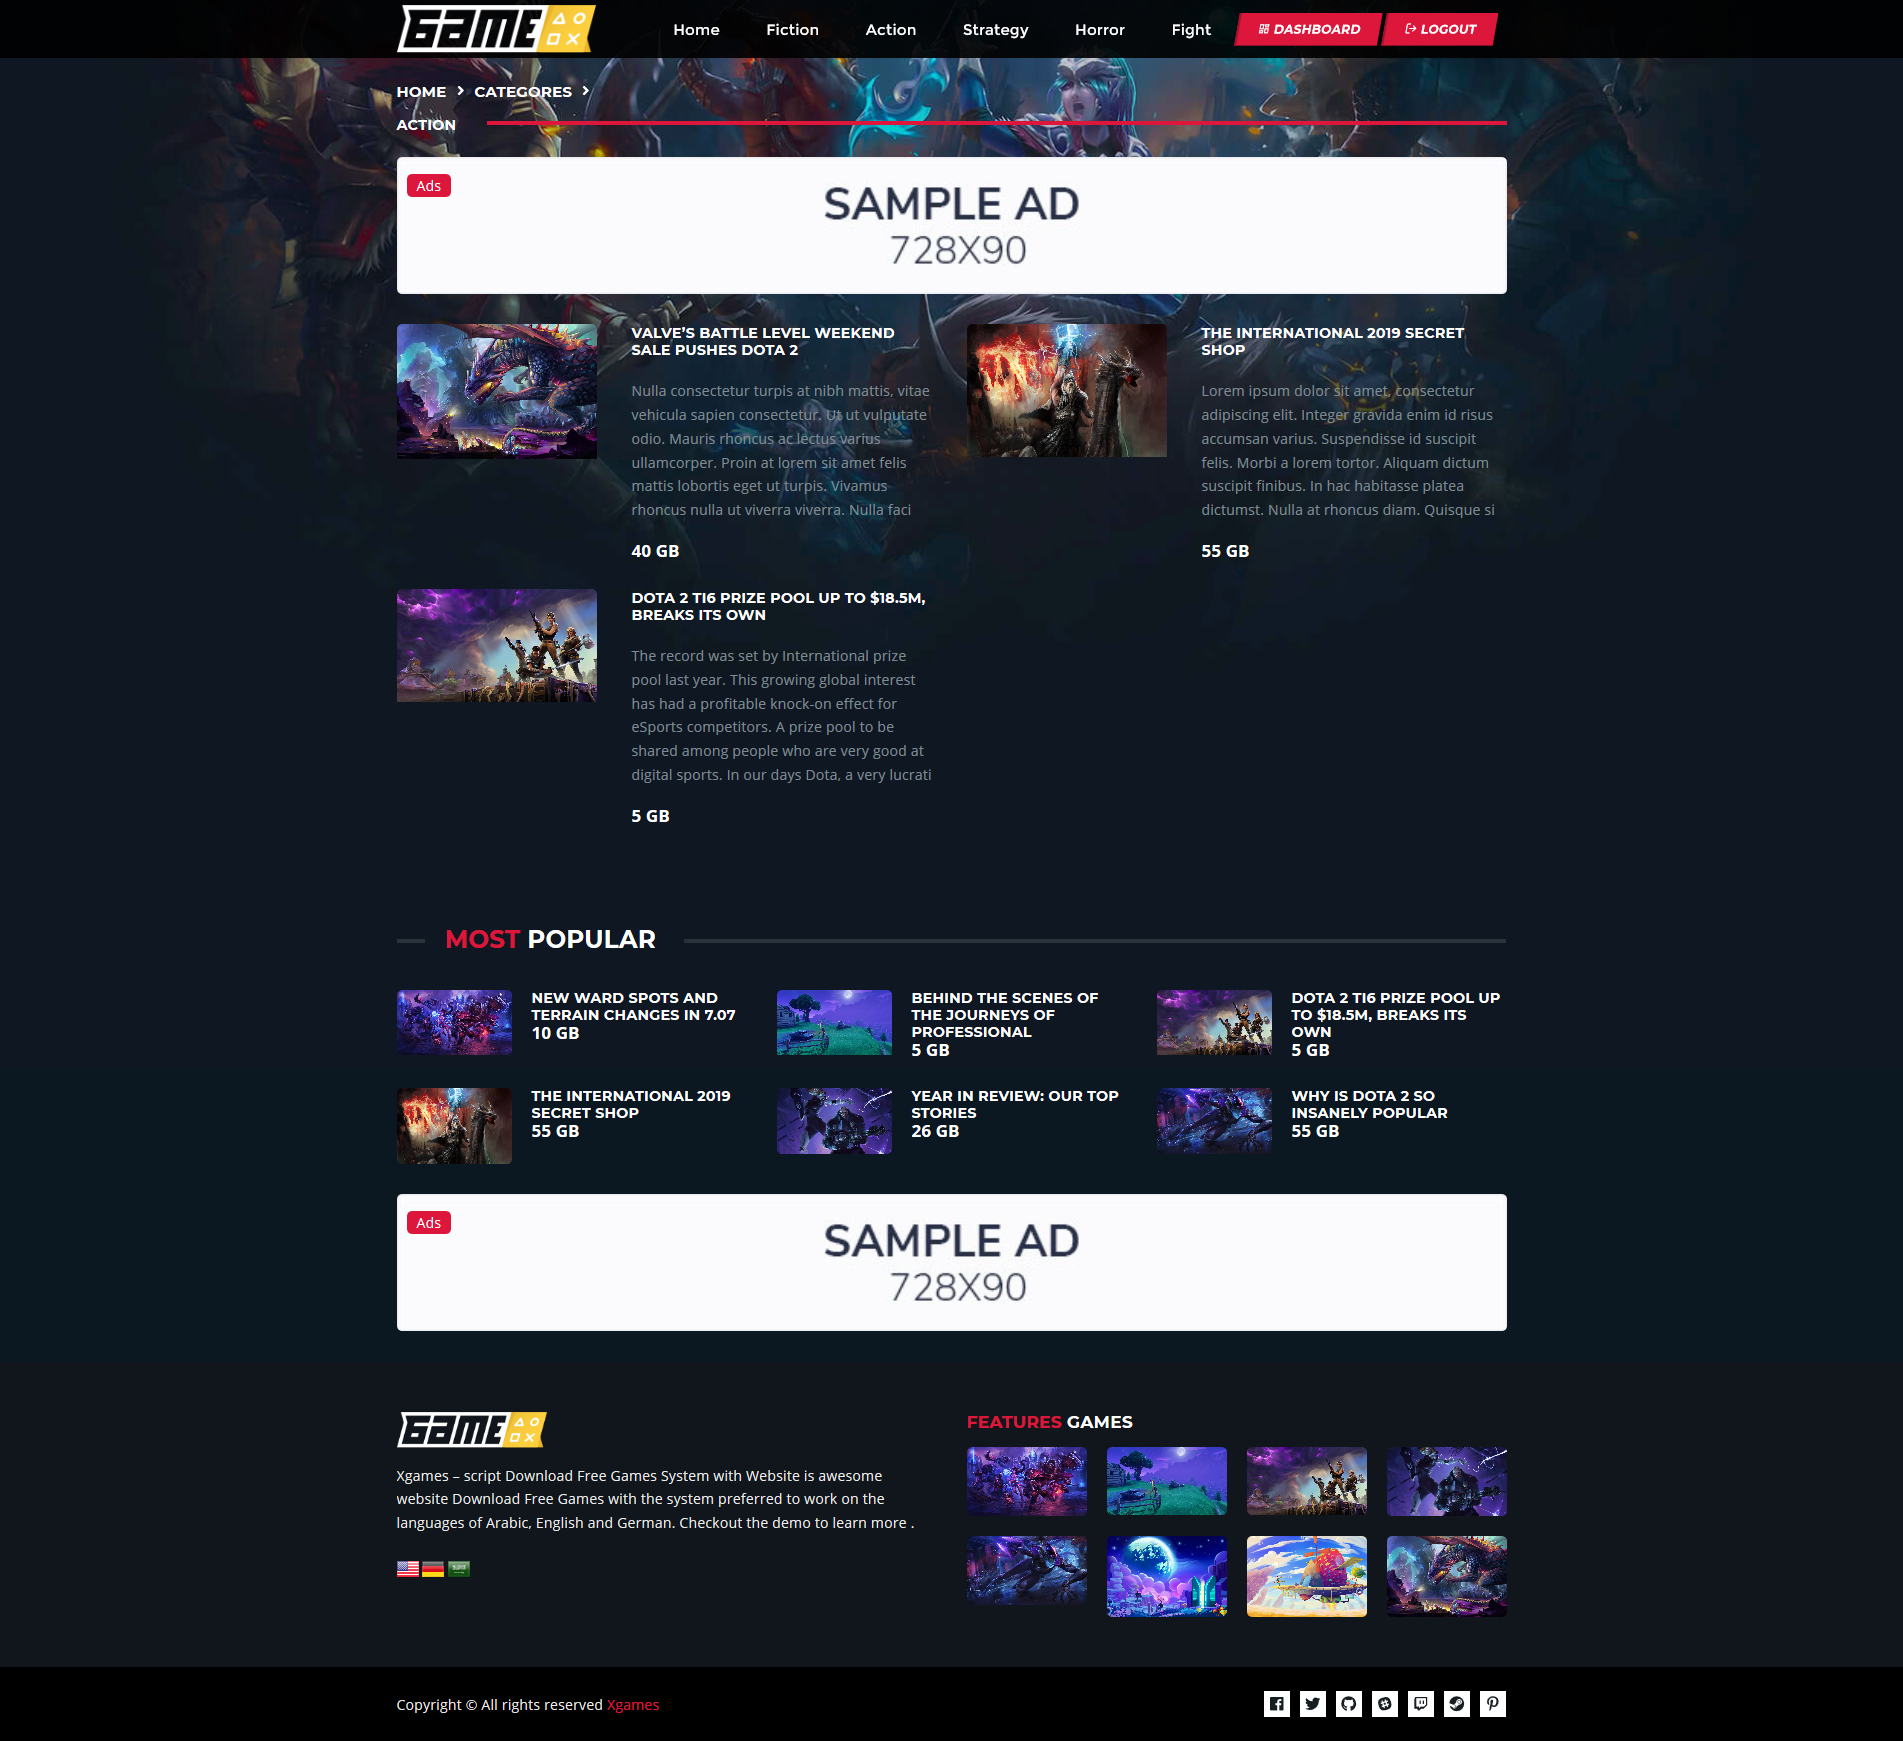 Spil games free-to-play gaming network launched conceptis.